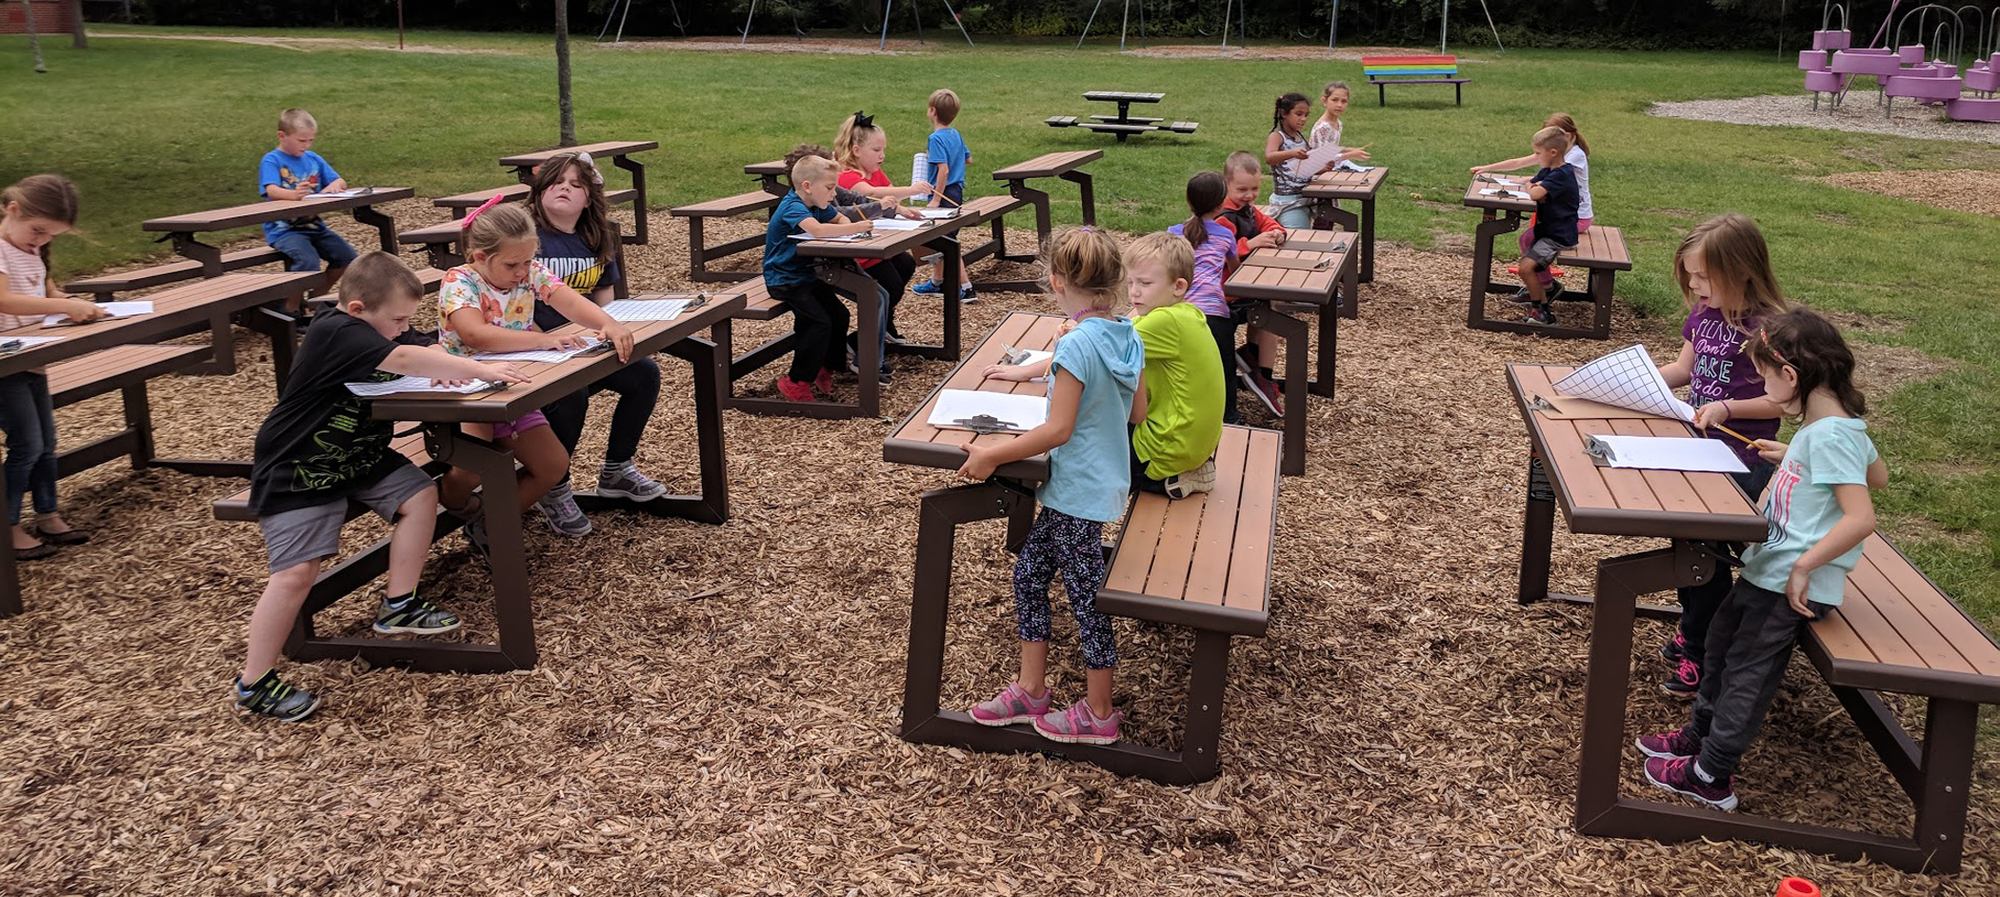 Outdoor Classroom with students working